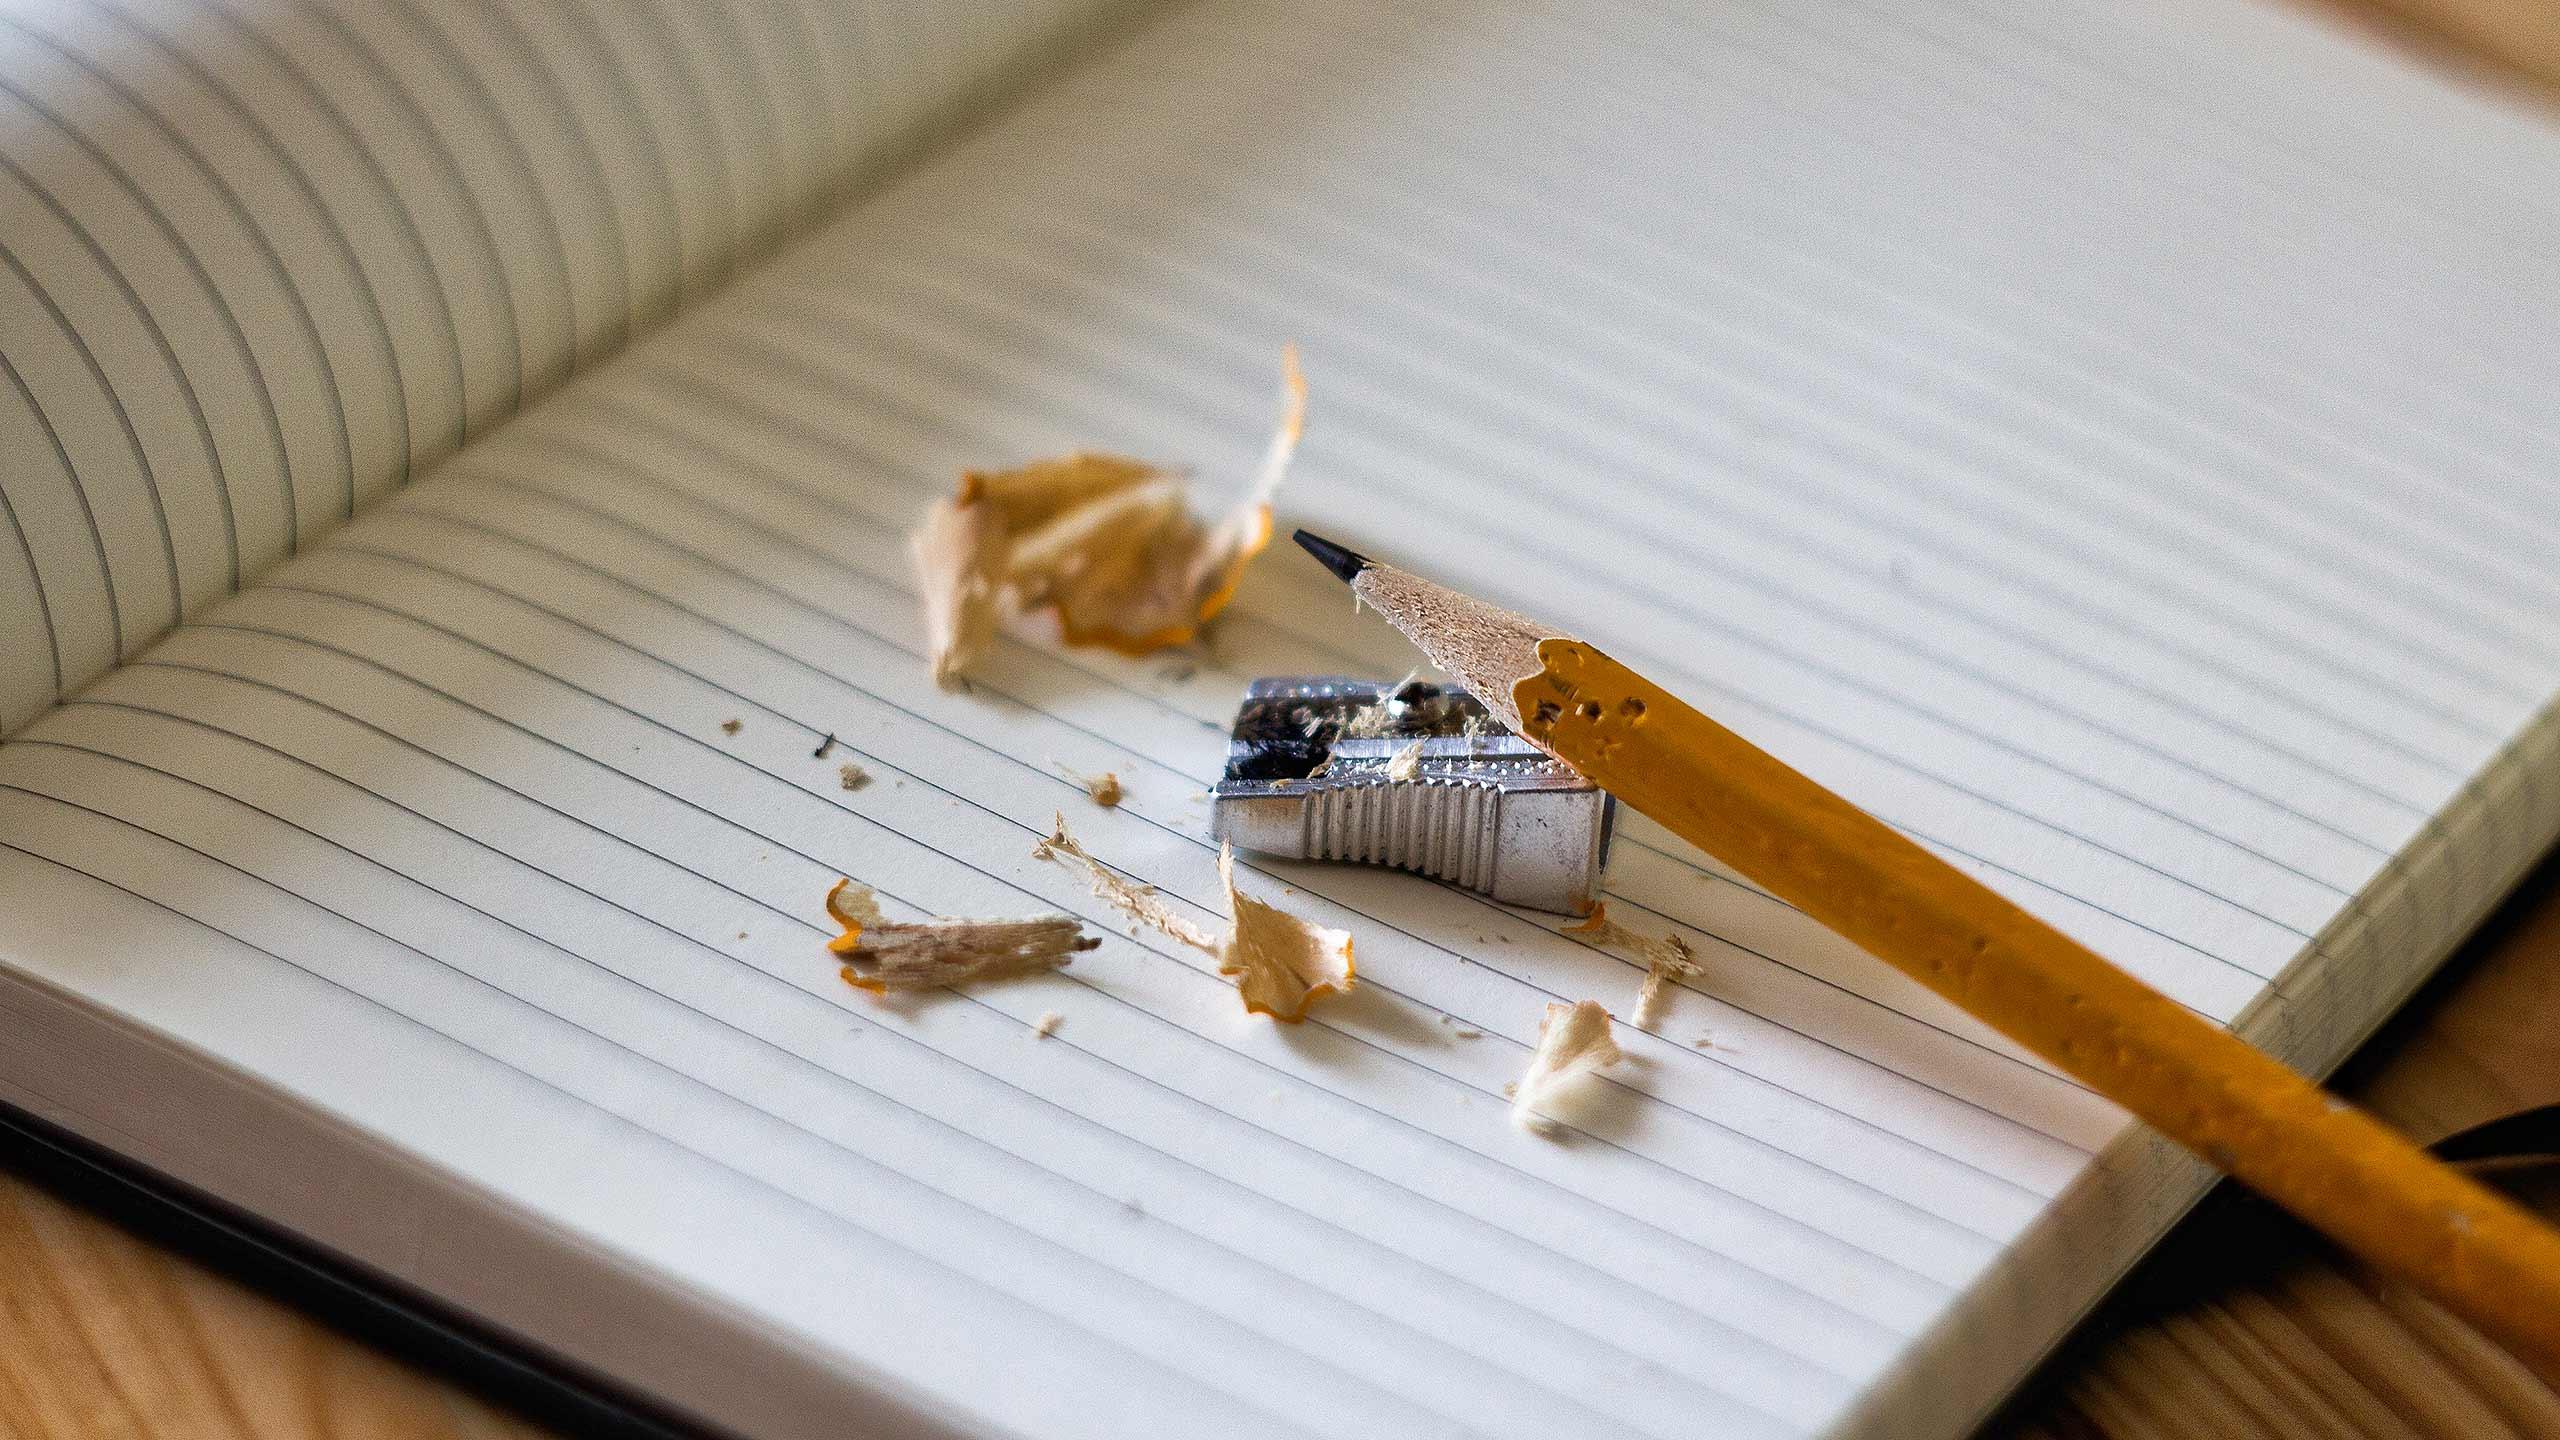 A pencil resting on a notebook, being sharpened.